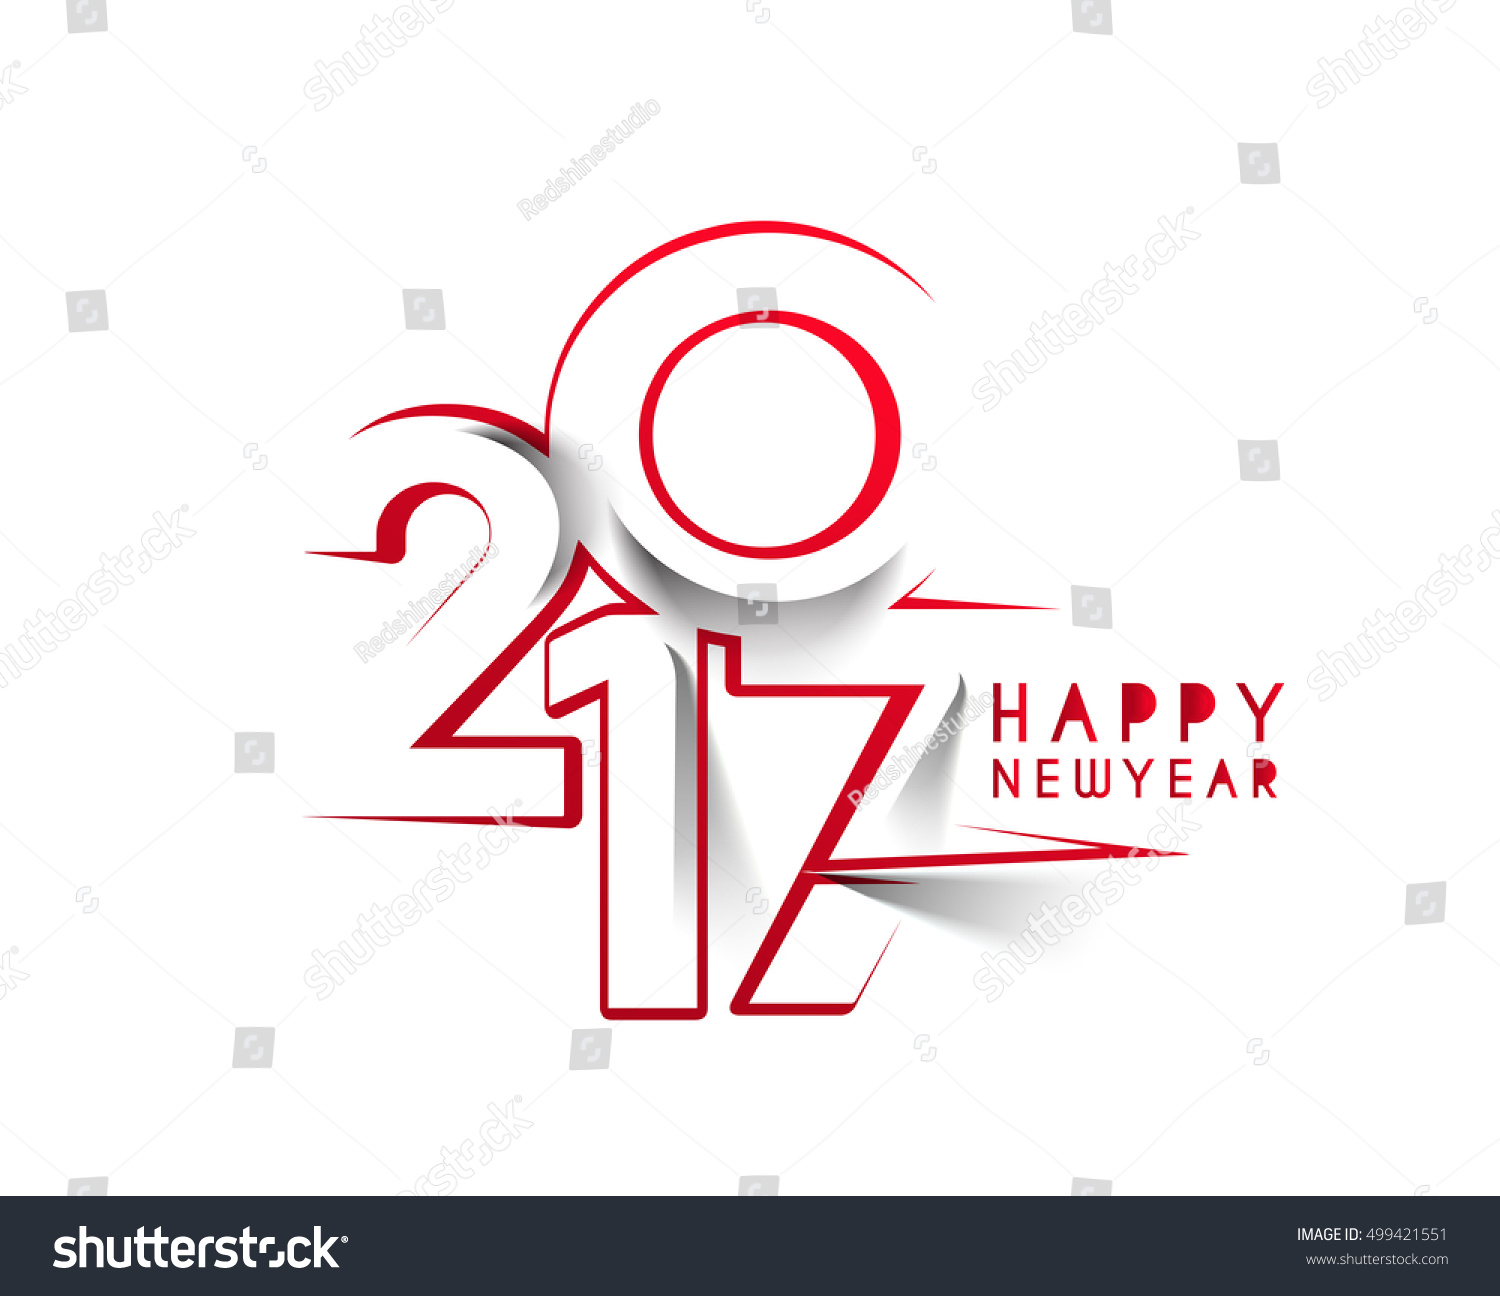 Line Art Text : Happy new year line art text design vector background